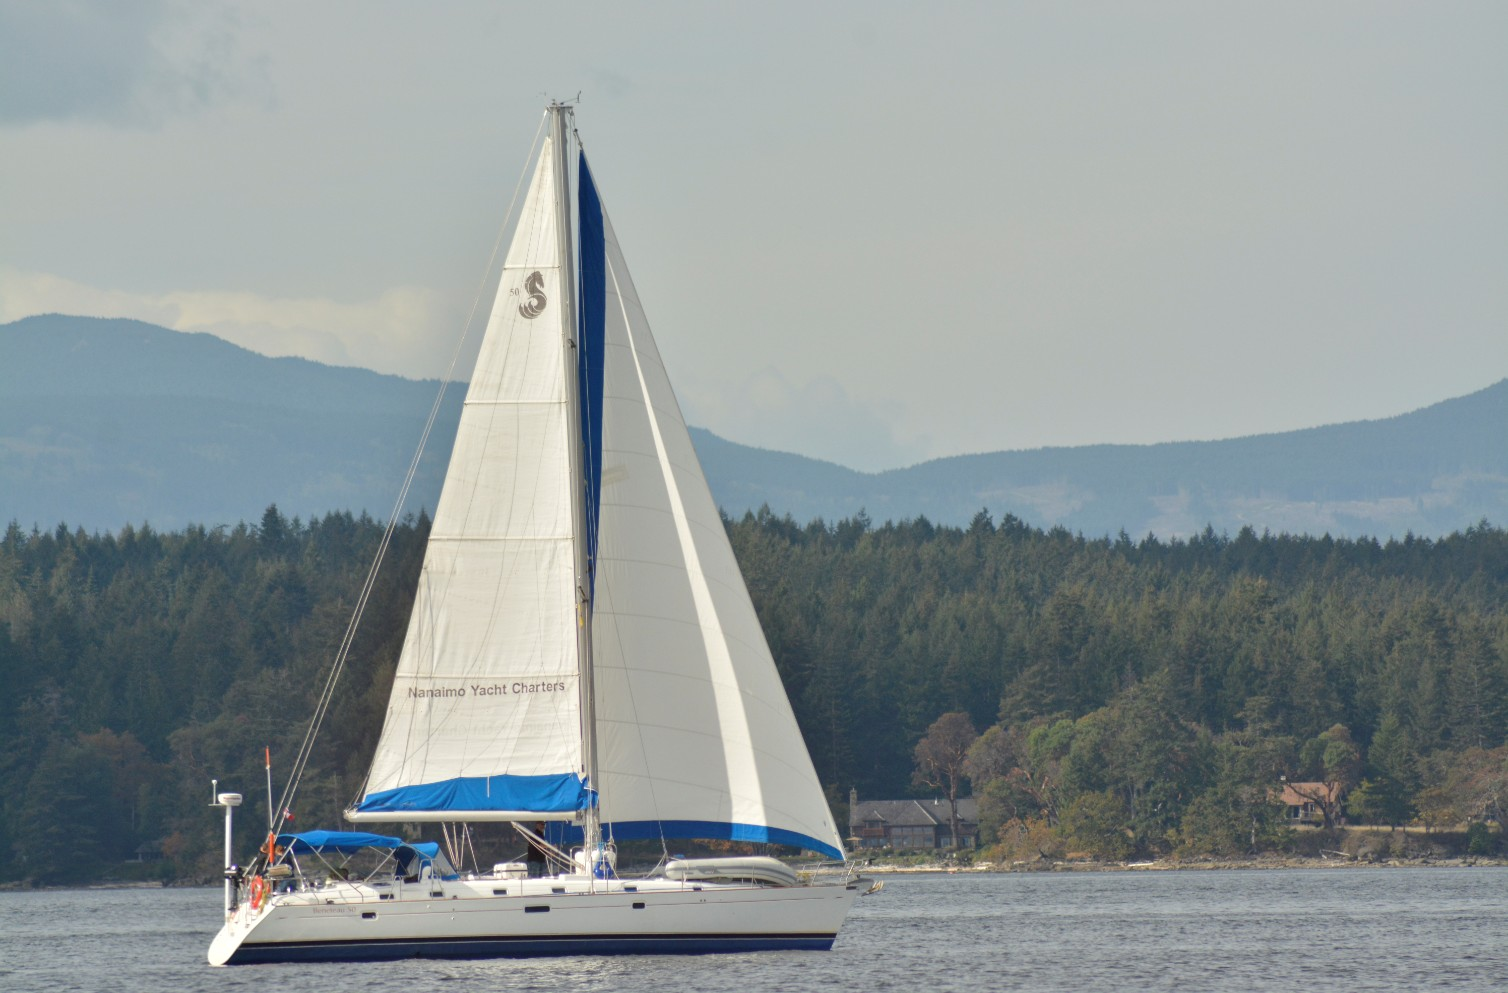 Best time Sailing, Sailing Vancouver is providing spectacular scenery on and around this beautiful island.